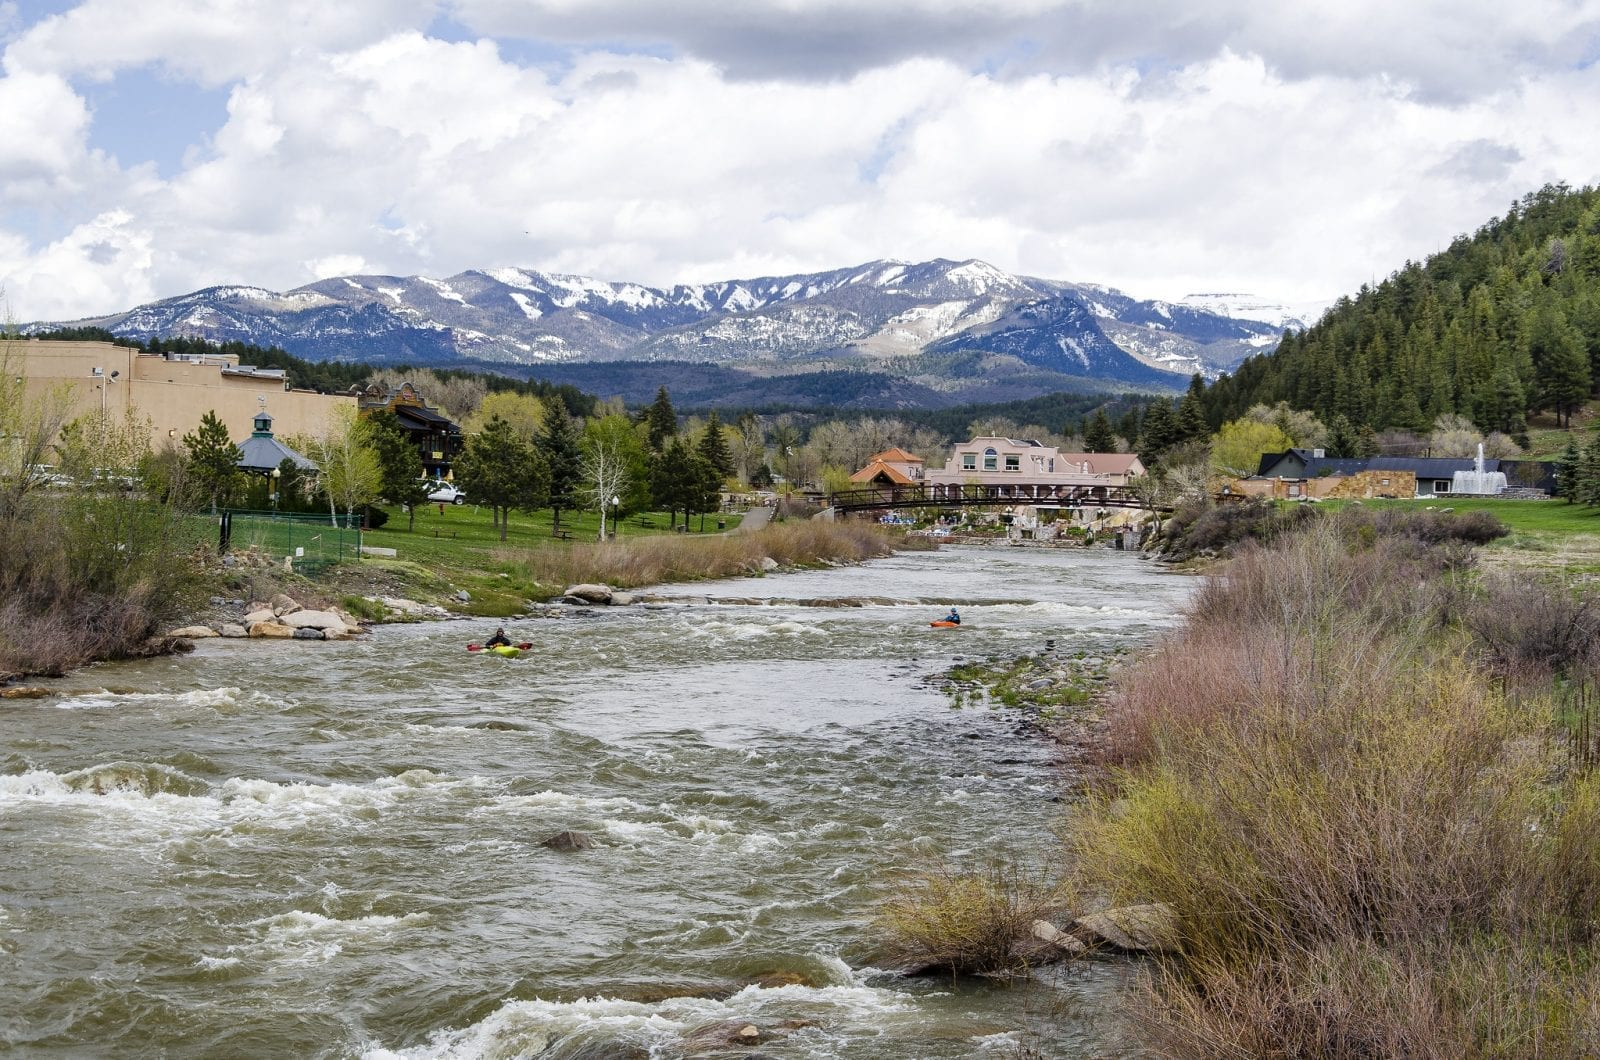 Image of the San Juan River flowing with mountains in the background in Colorado